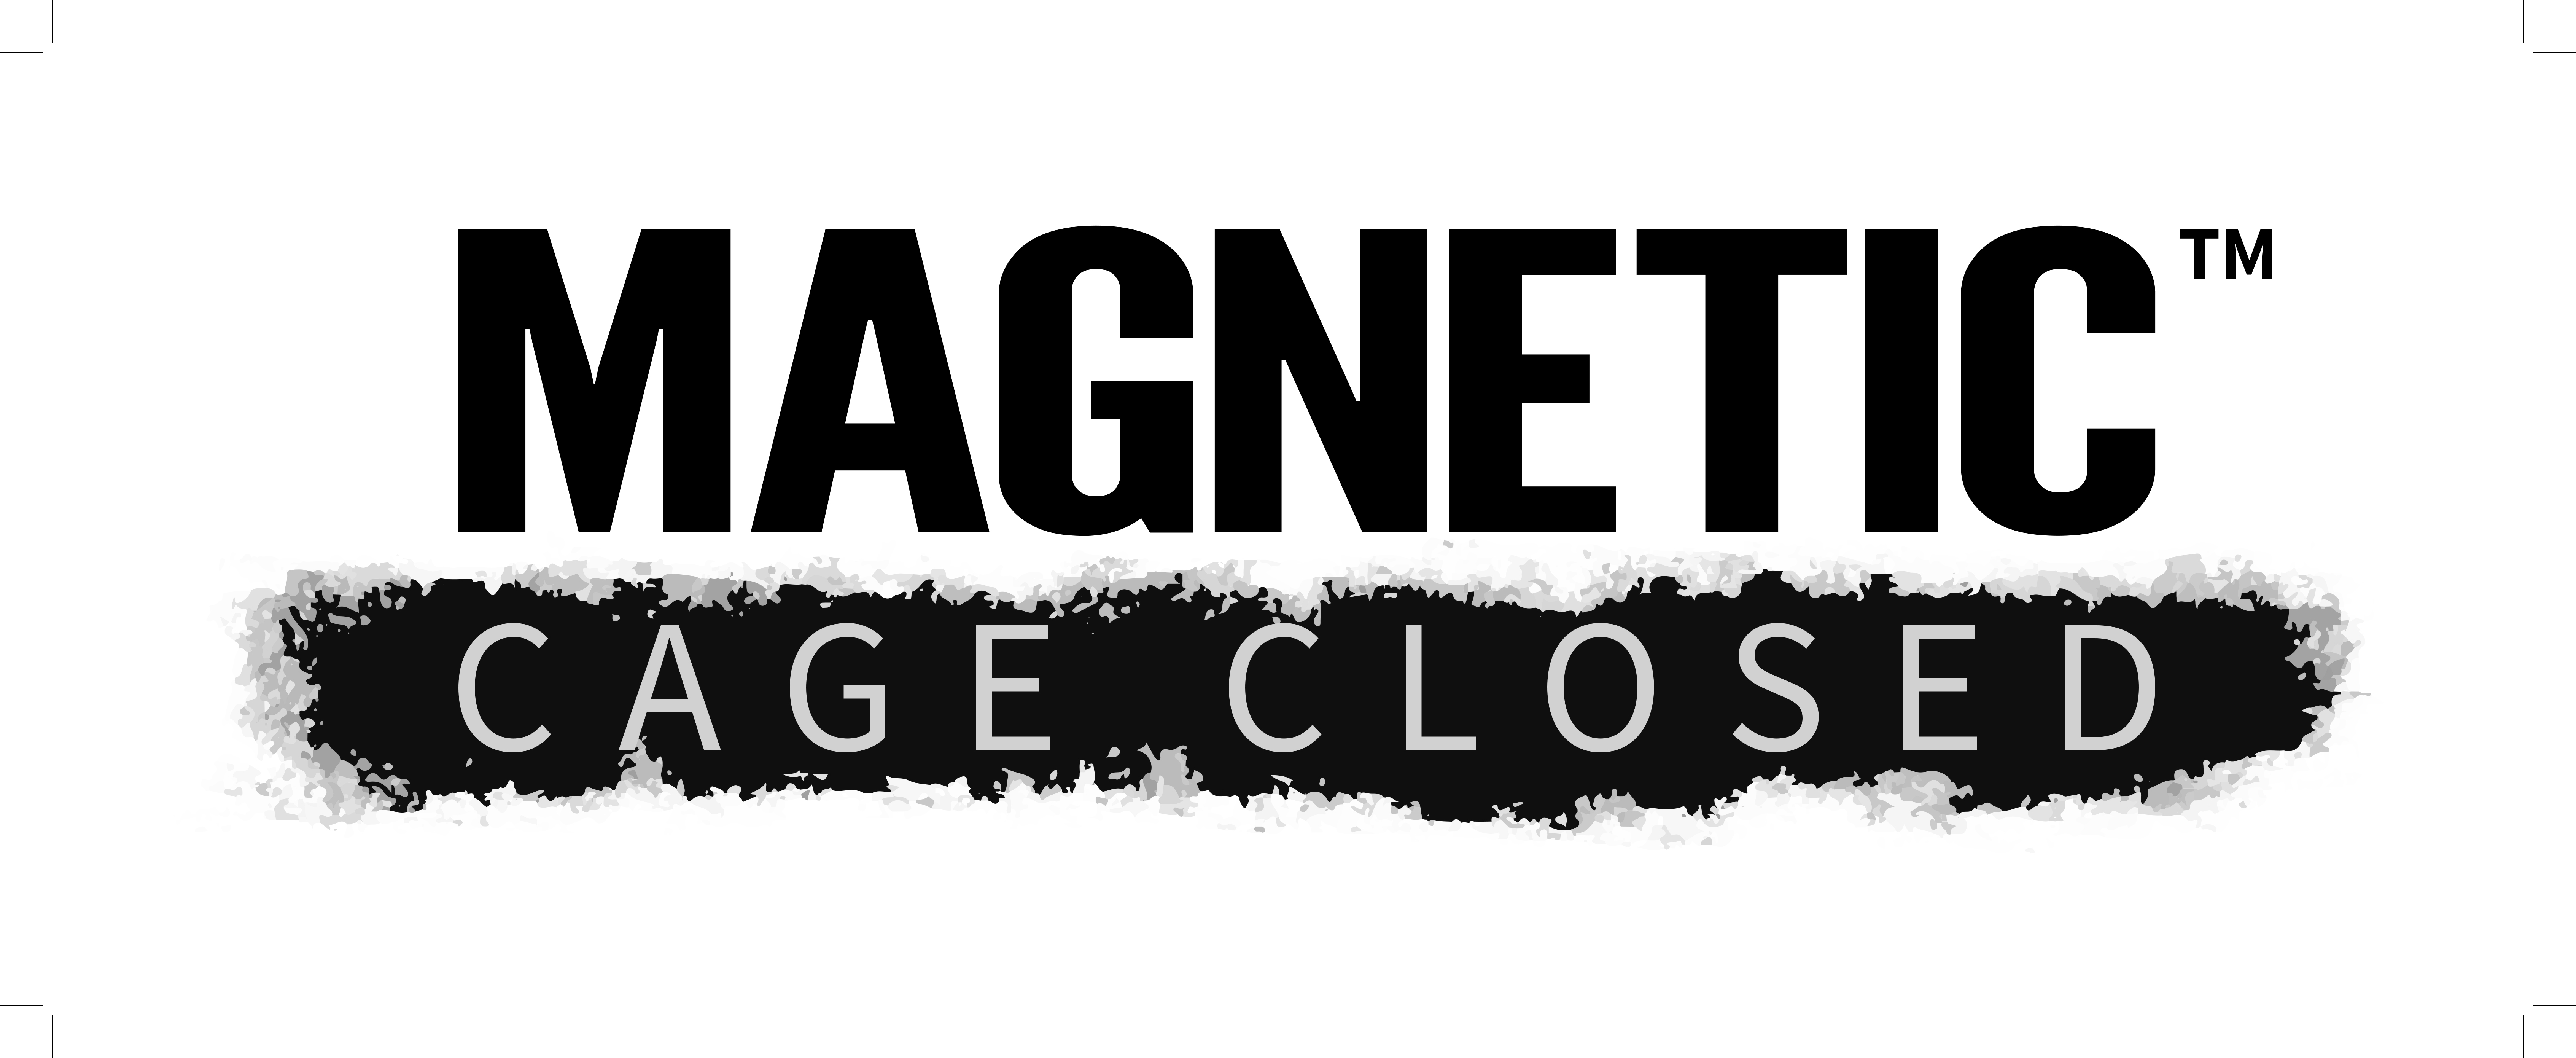 Box art - Magnetic: Cage Closed